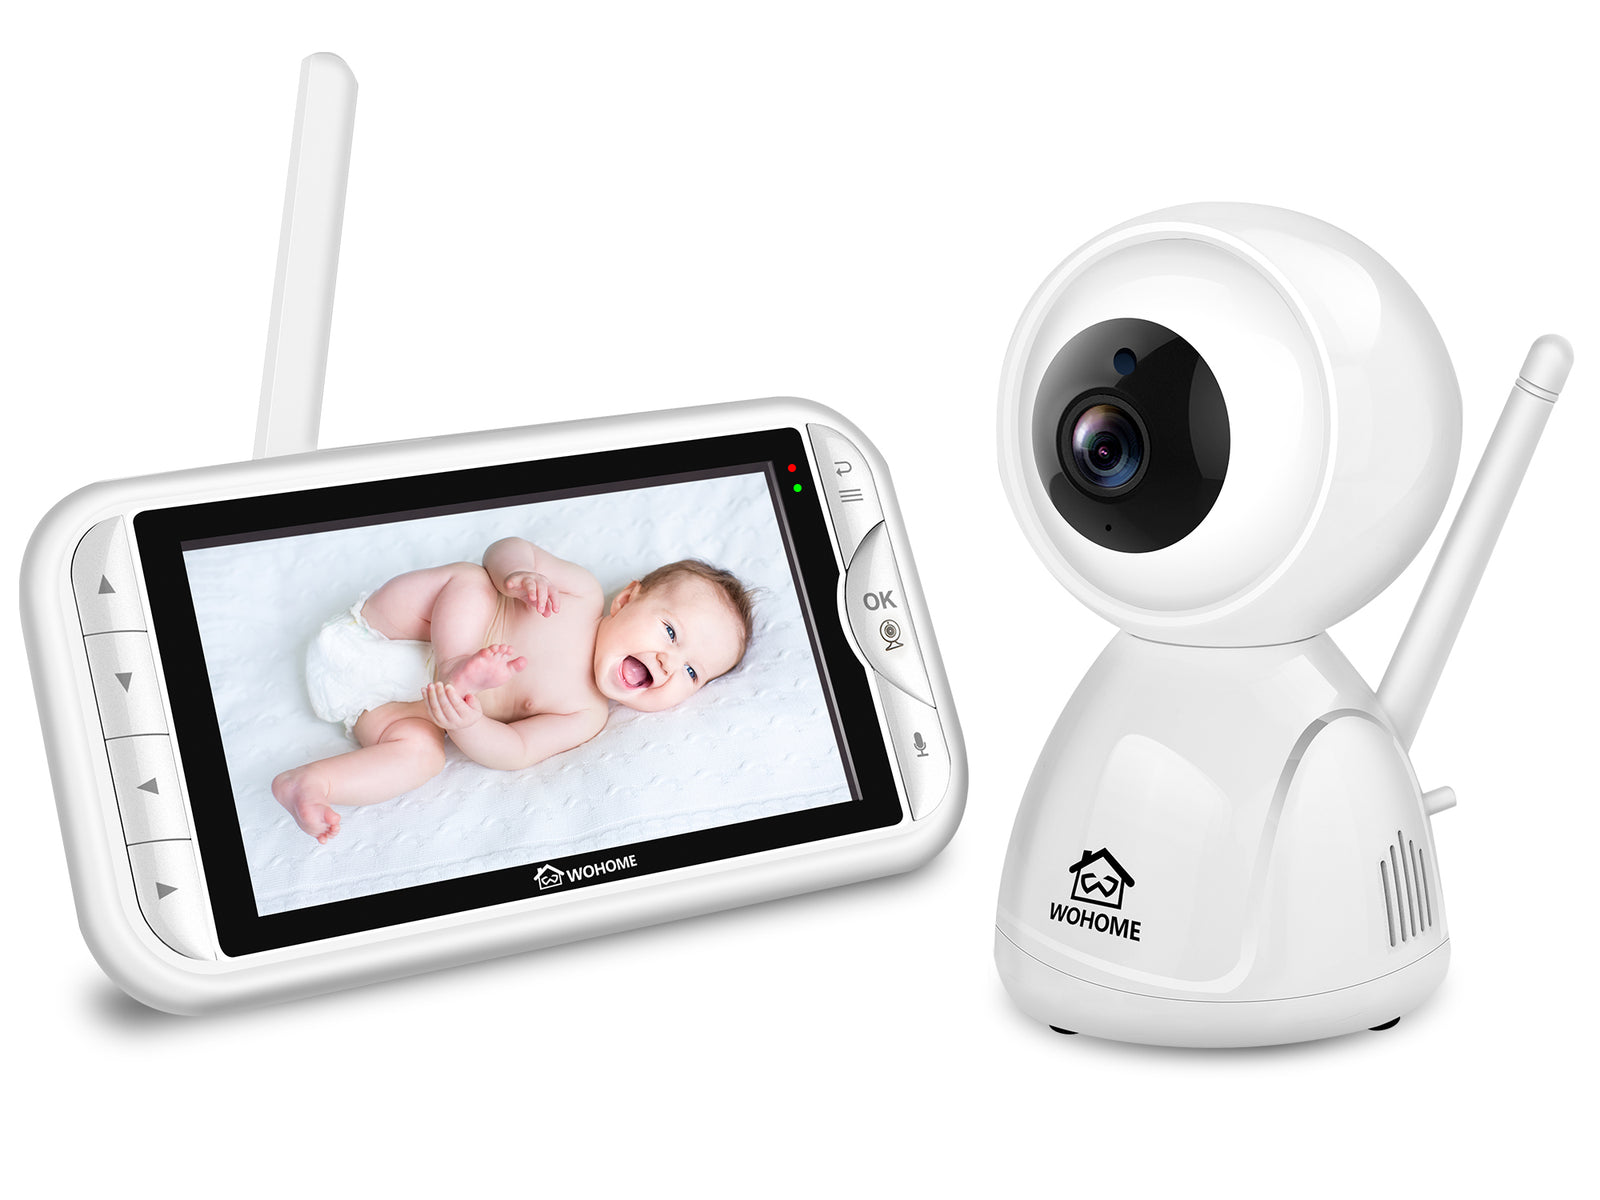 "Wohome LY-129 Video Baby Monitor with Camera and Audio,Remote Pan,Tilt,One-click Zoom,720 HD 5""Display,2-Way Talk,900ft Range,Tem/sound alert,Night Vision,Thermal Monitor and Wall Mount kit"